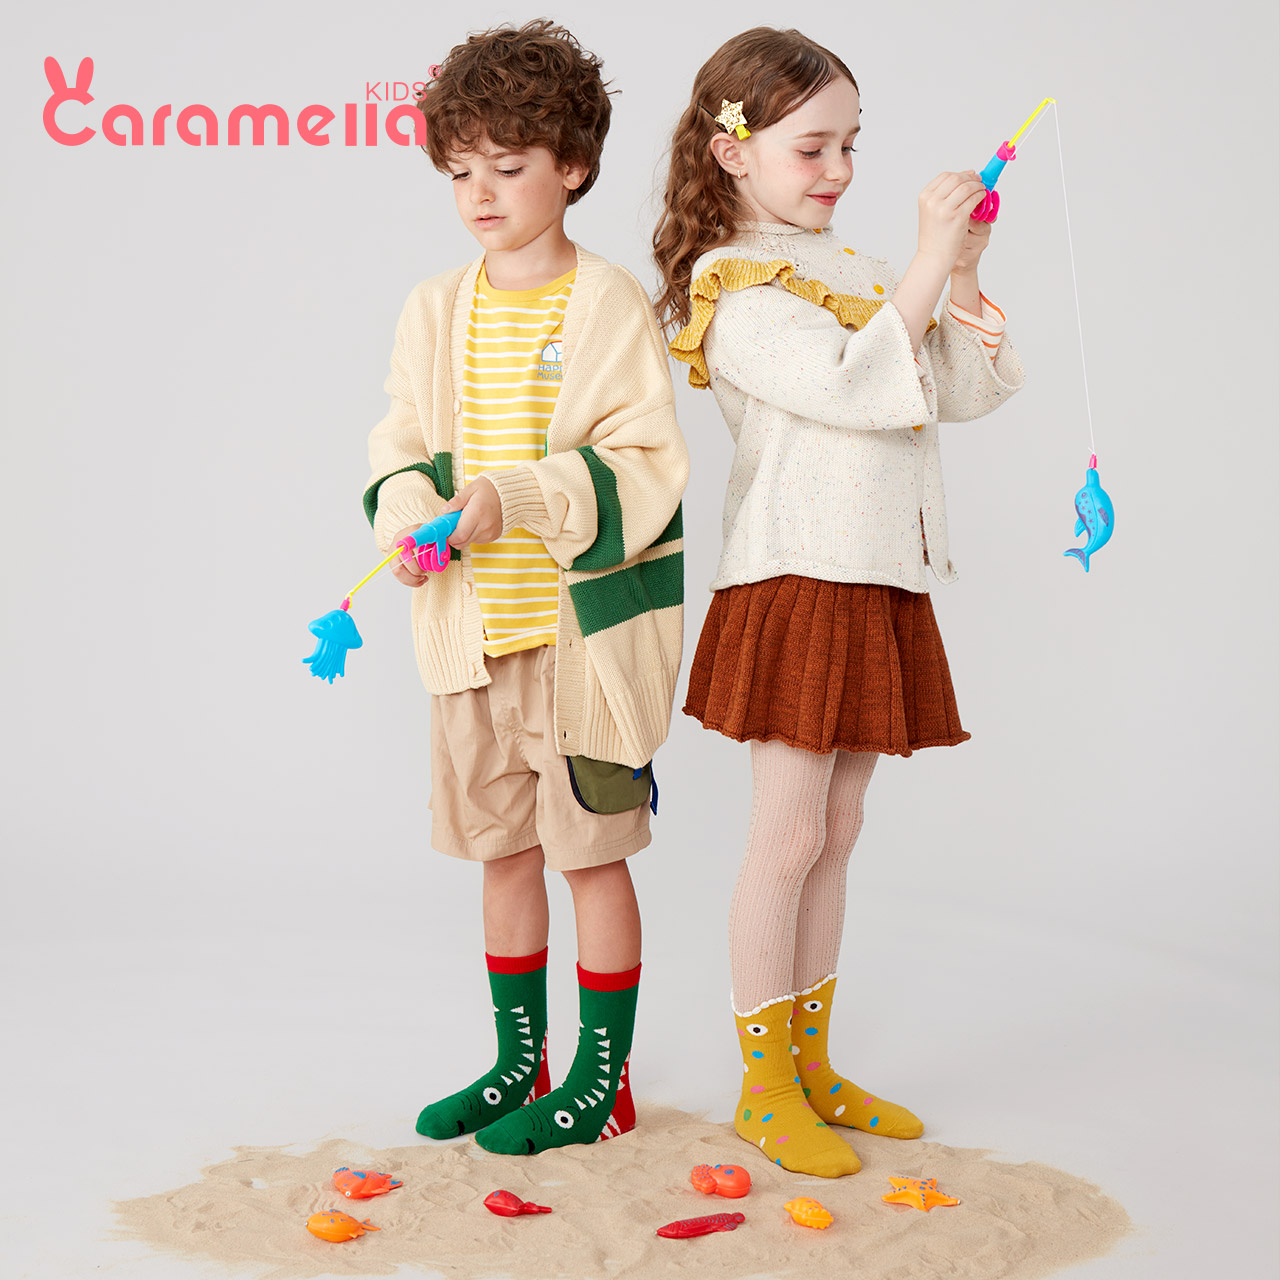 Caramela children's socks spring and autumn pure cotton socks boys and girls' socks baby socks baby socks